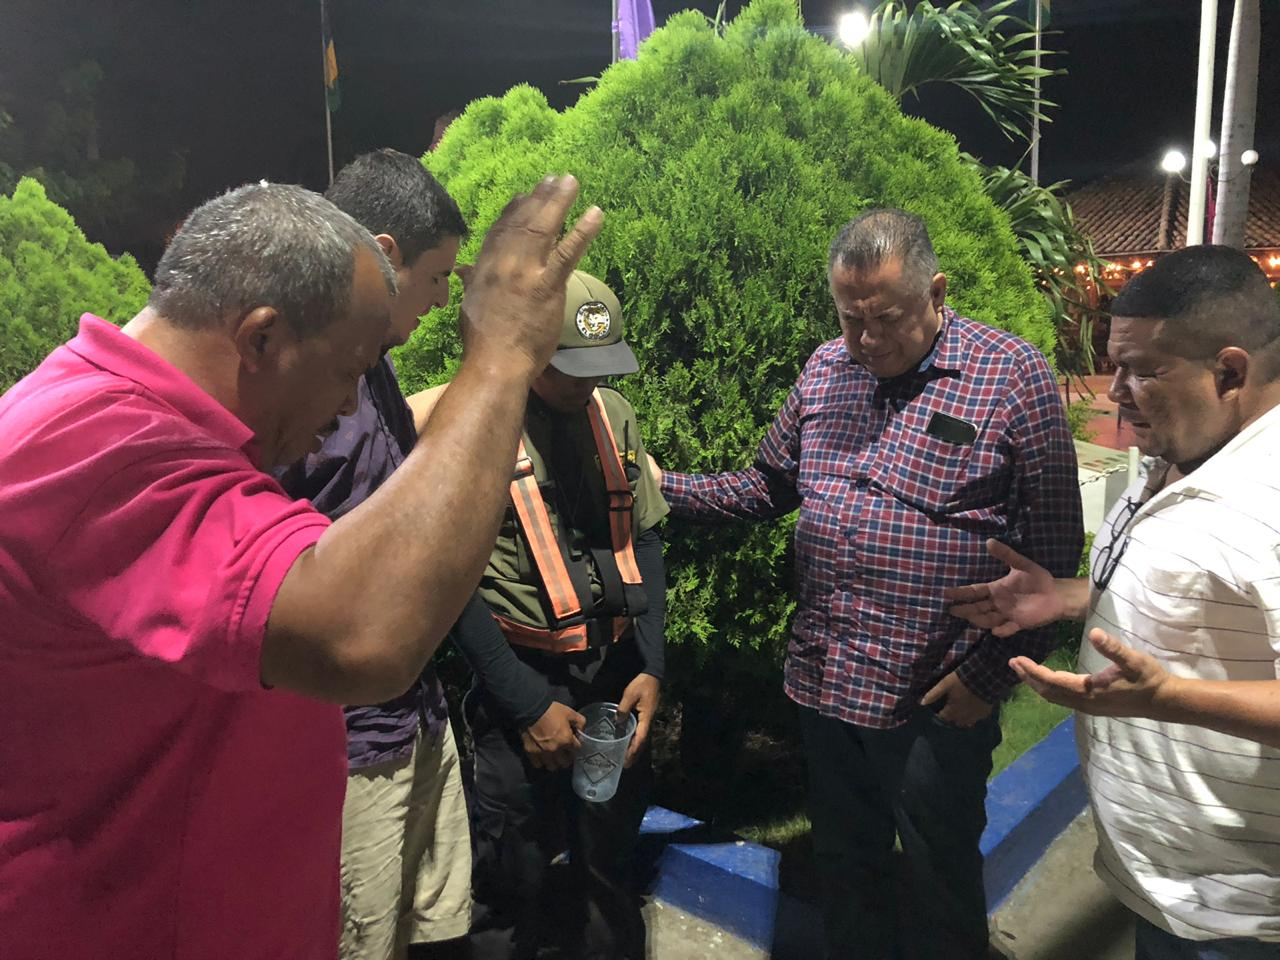 Connect Global supports local pastors and church planters in as they travel throughout Latin America Sharing the Good News of Jesus.